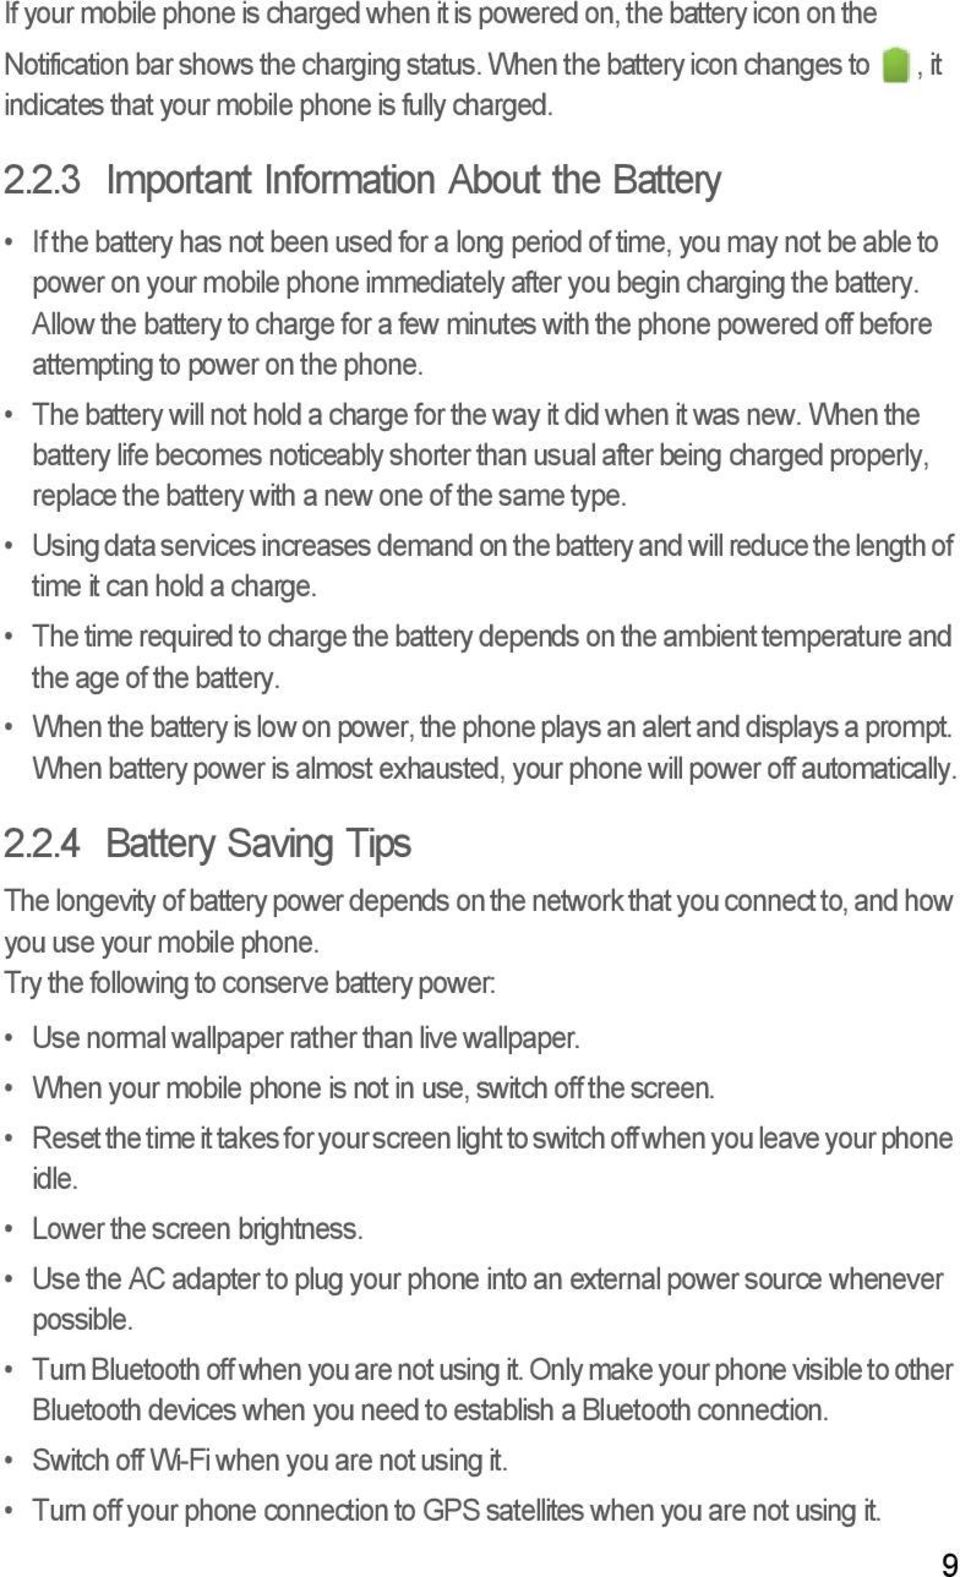 2.3 Important Information About the Battery If the battery has not been used for a long period of time, you may not be able to power on your mobile phone immediately after you begin charging the